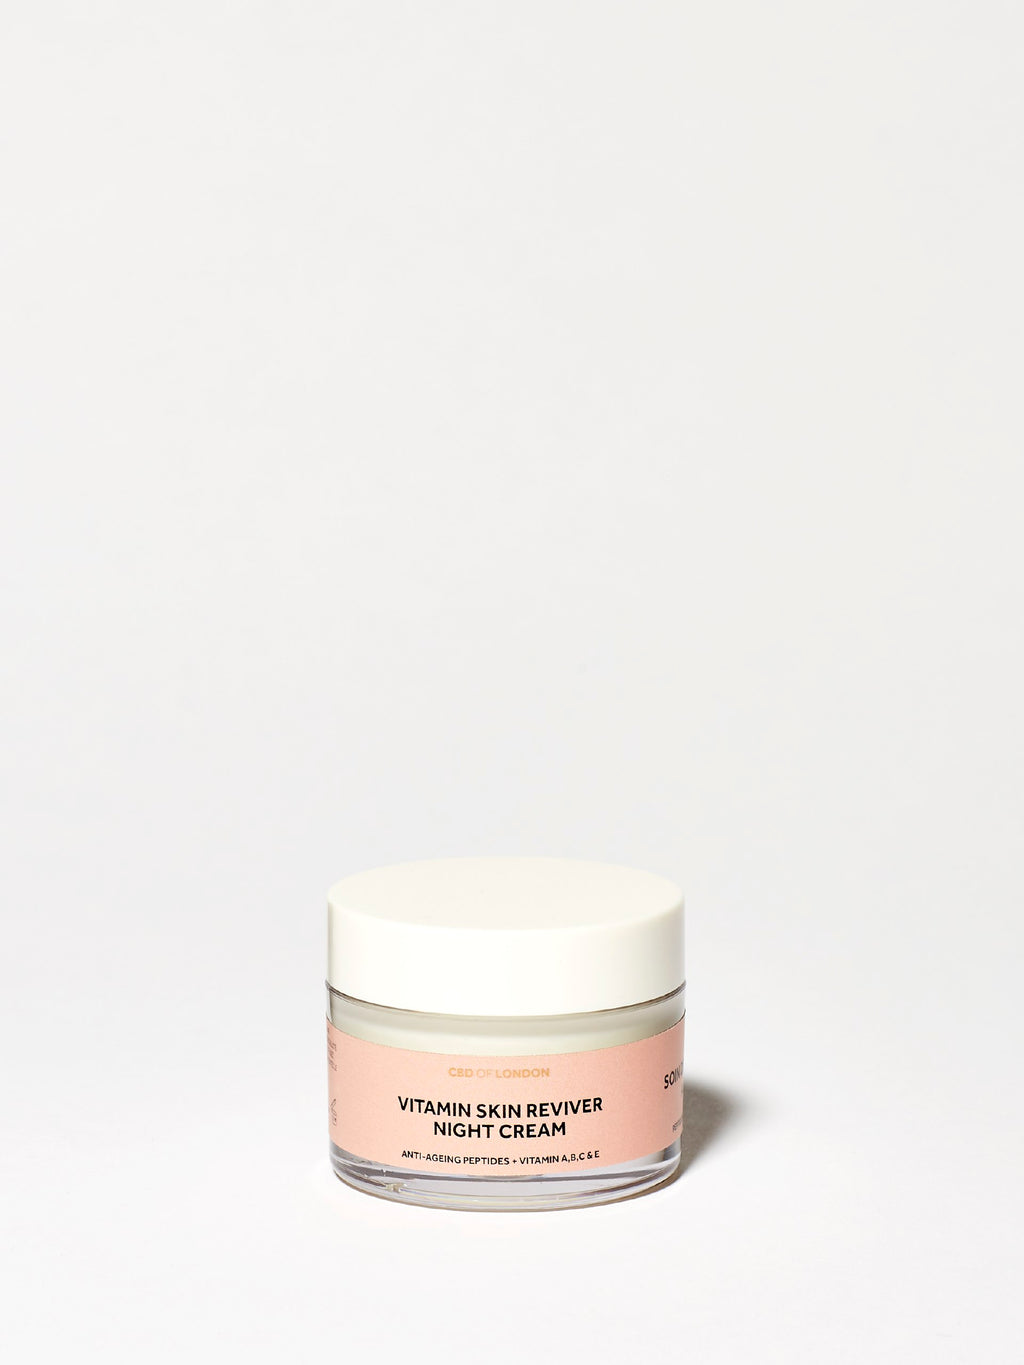 Vitamin Skin Reviver Night Cream